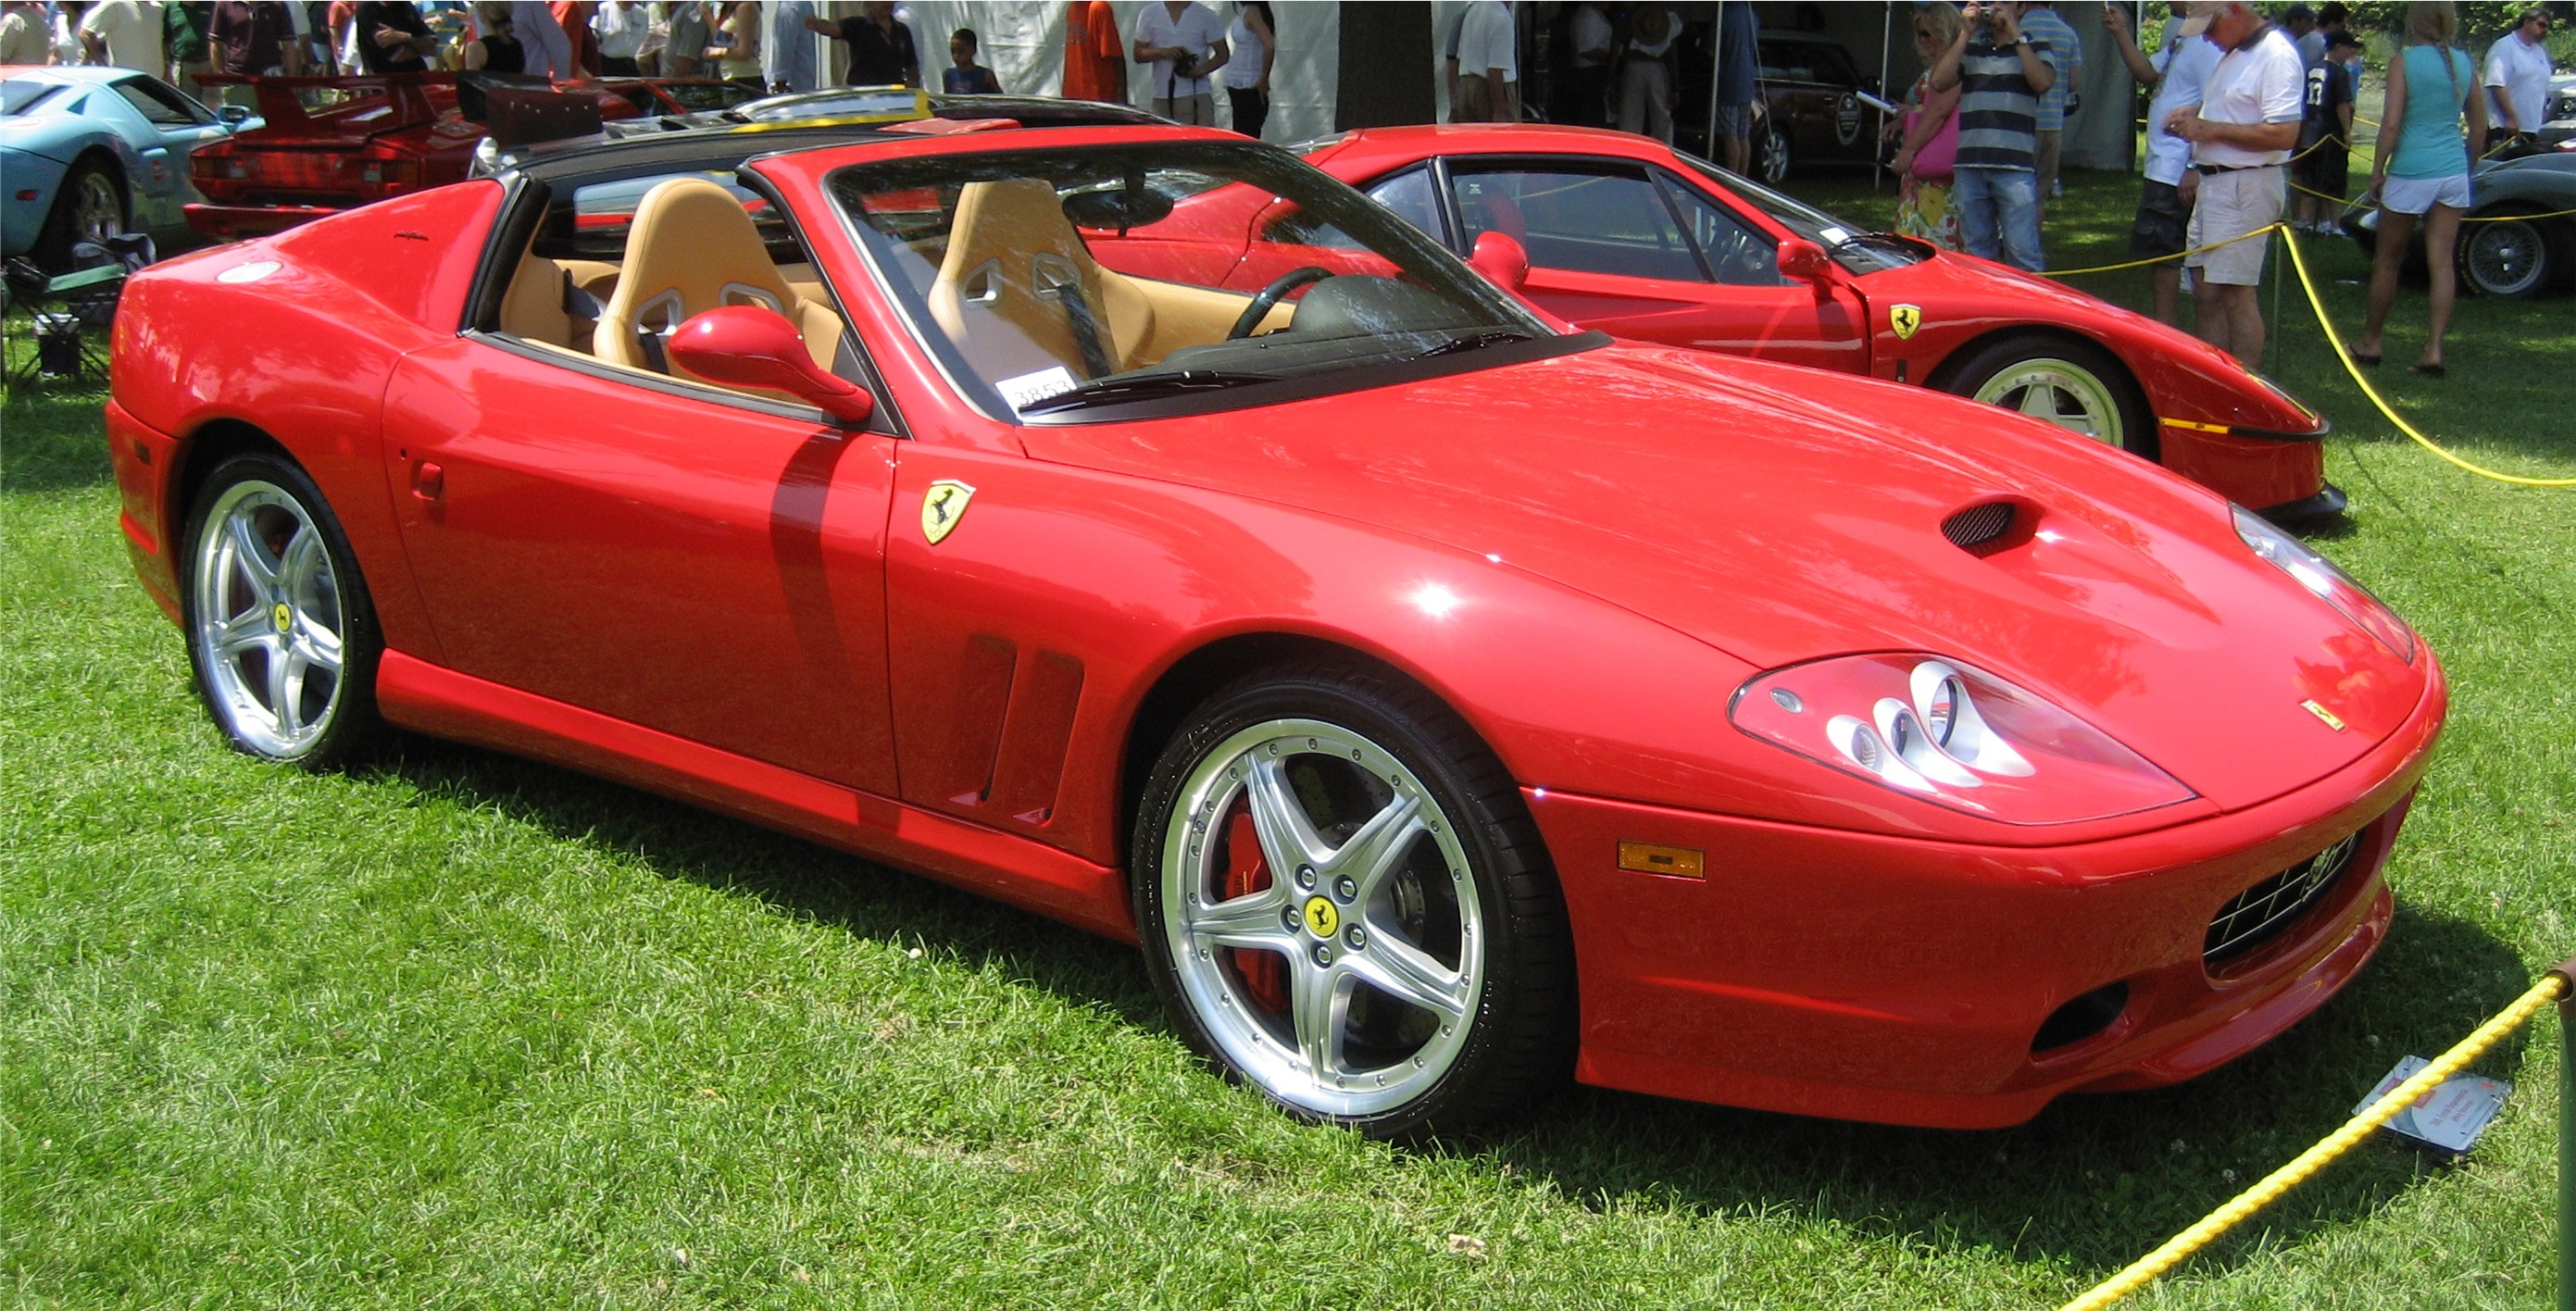 2005 Ferrari Superamerica World Cars Free Download Image Of